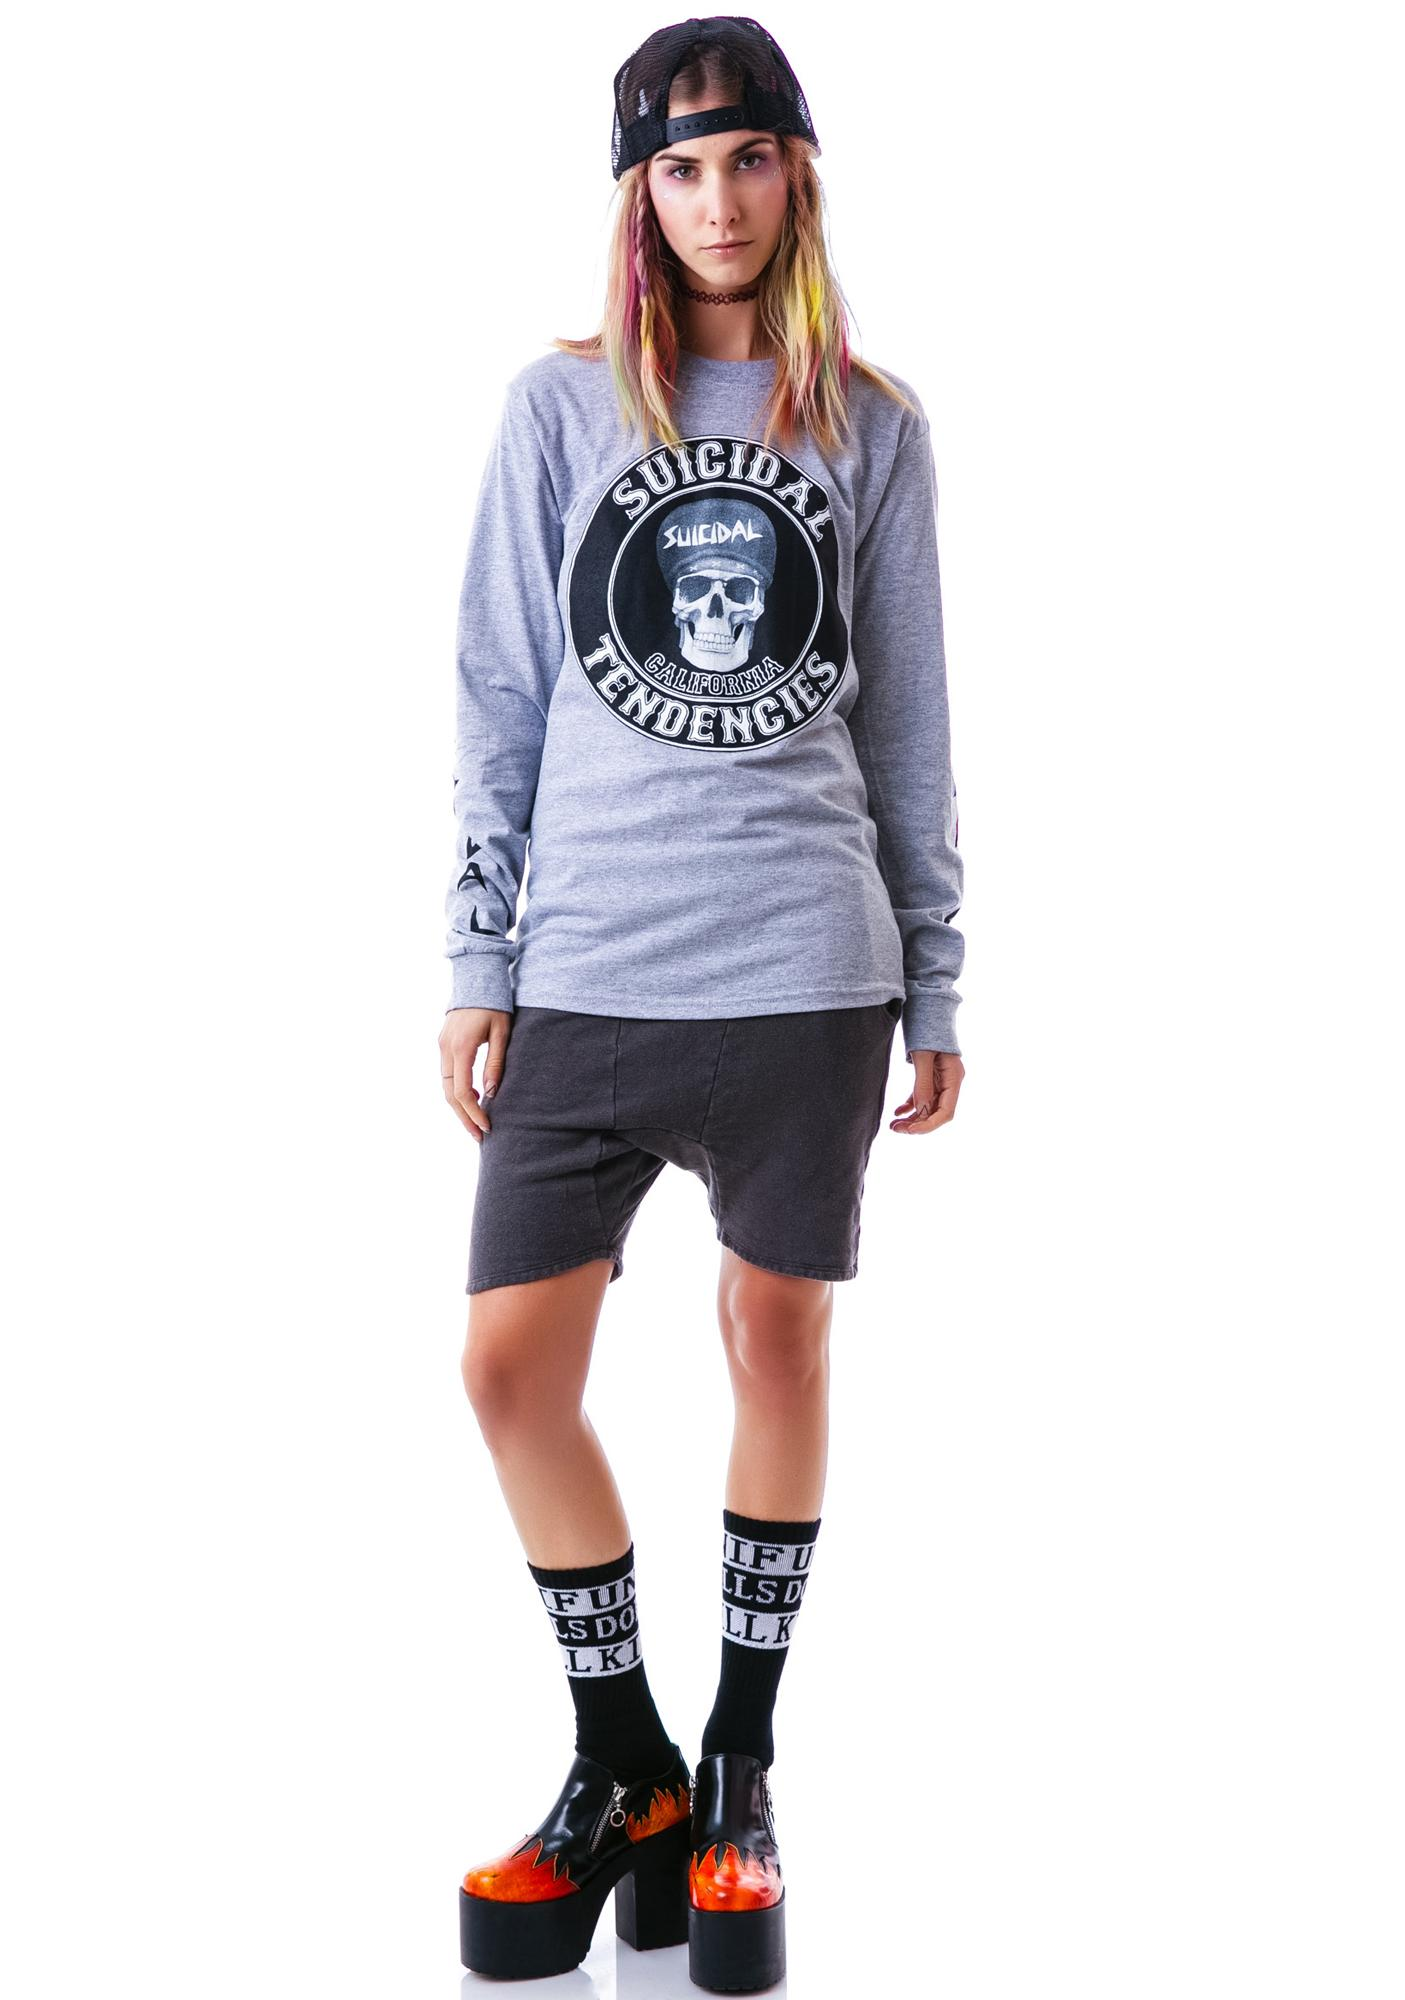 Suicidal Tendencies SSS California Longsleeve